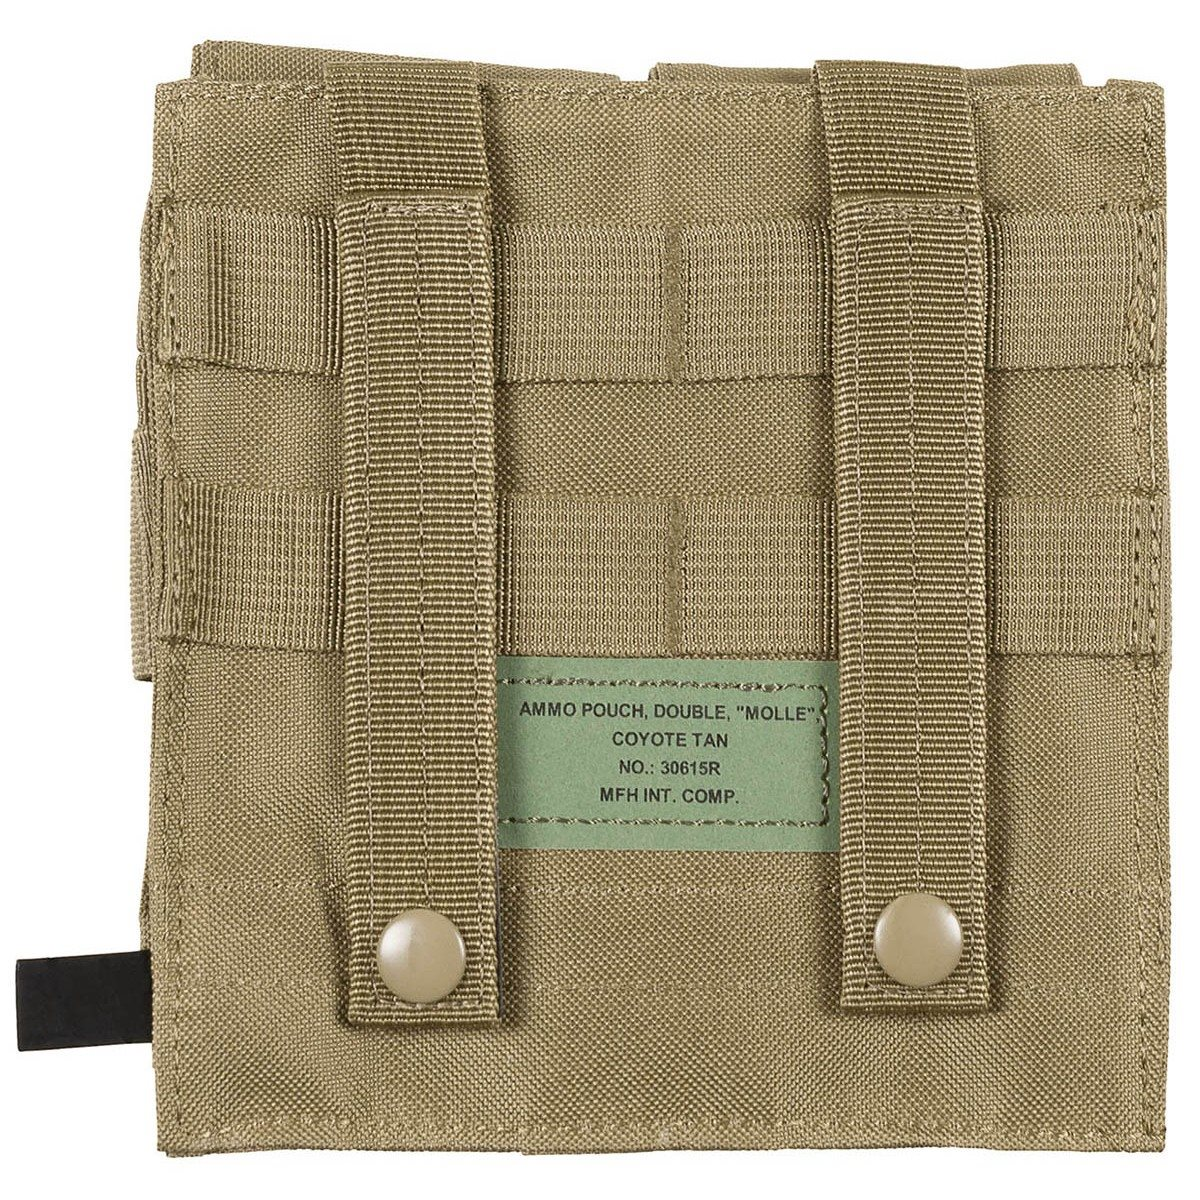 Pouch MOLLE Double M4/M16 COYOTE BROWN MFH int. comp. 30615R L-11